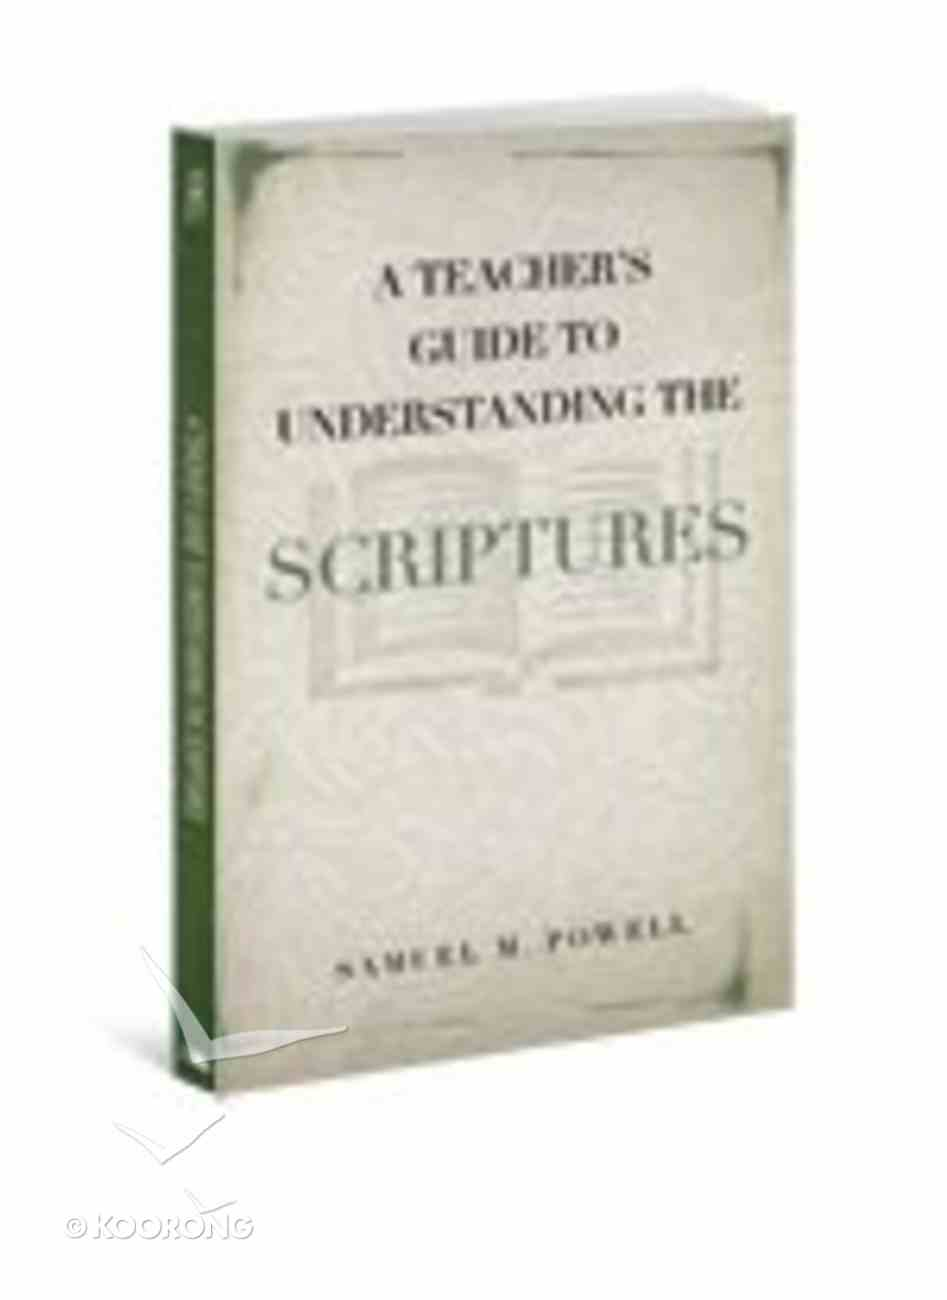 A Teacher's Guide to Understanding the Scriptures Paperback